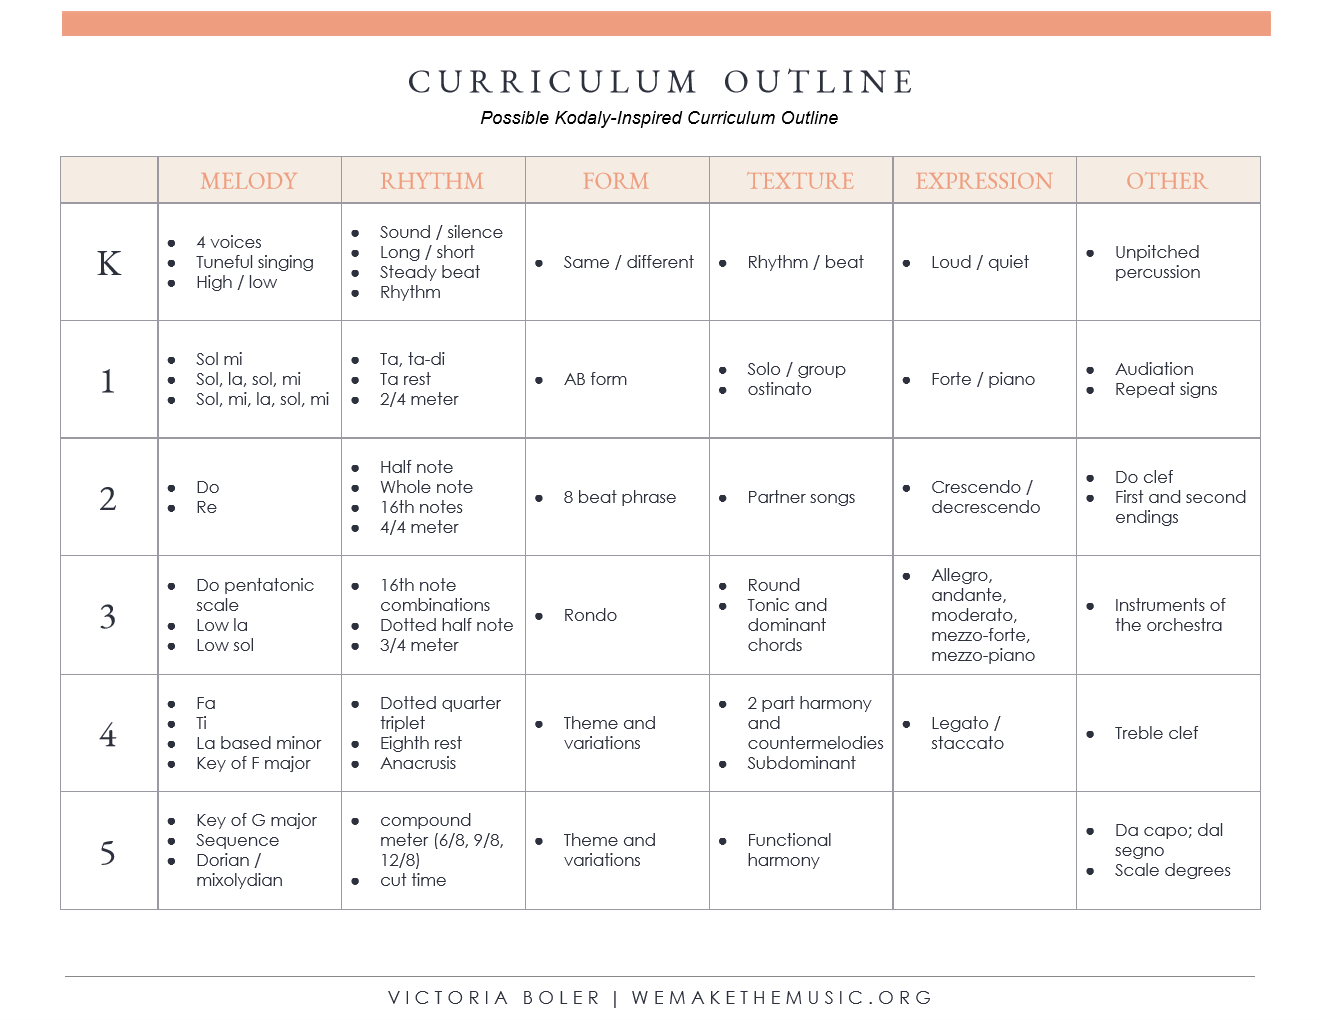 Possible Kodaly-Inspired Curriculum Outline.jpg